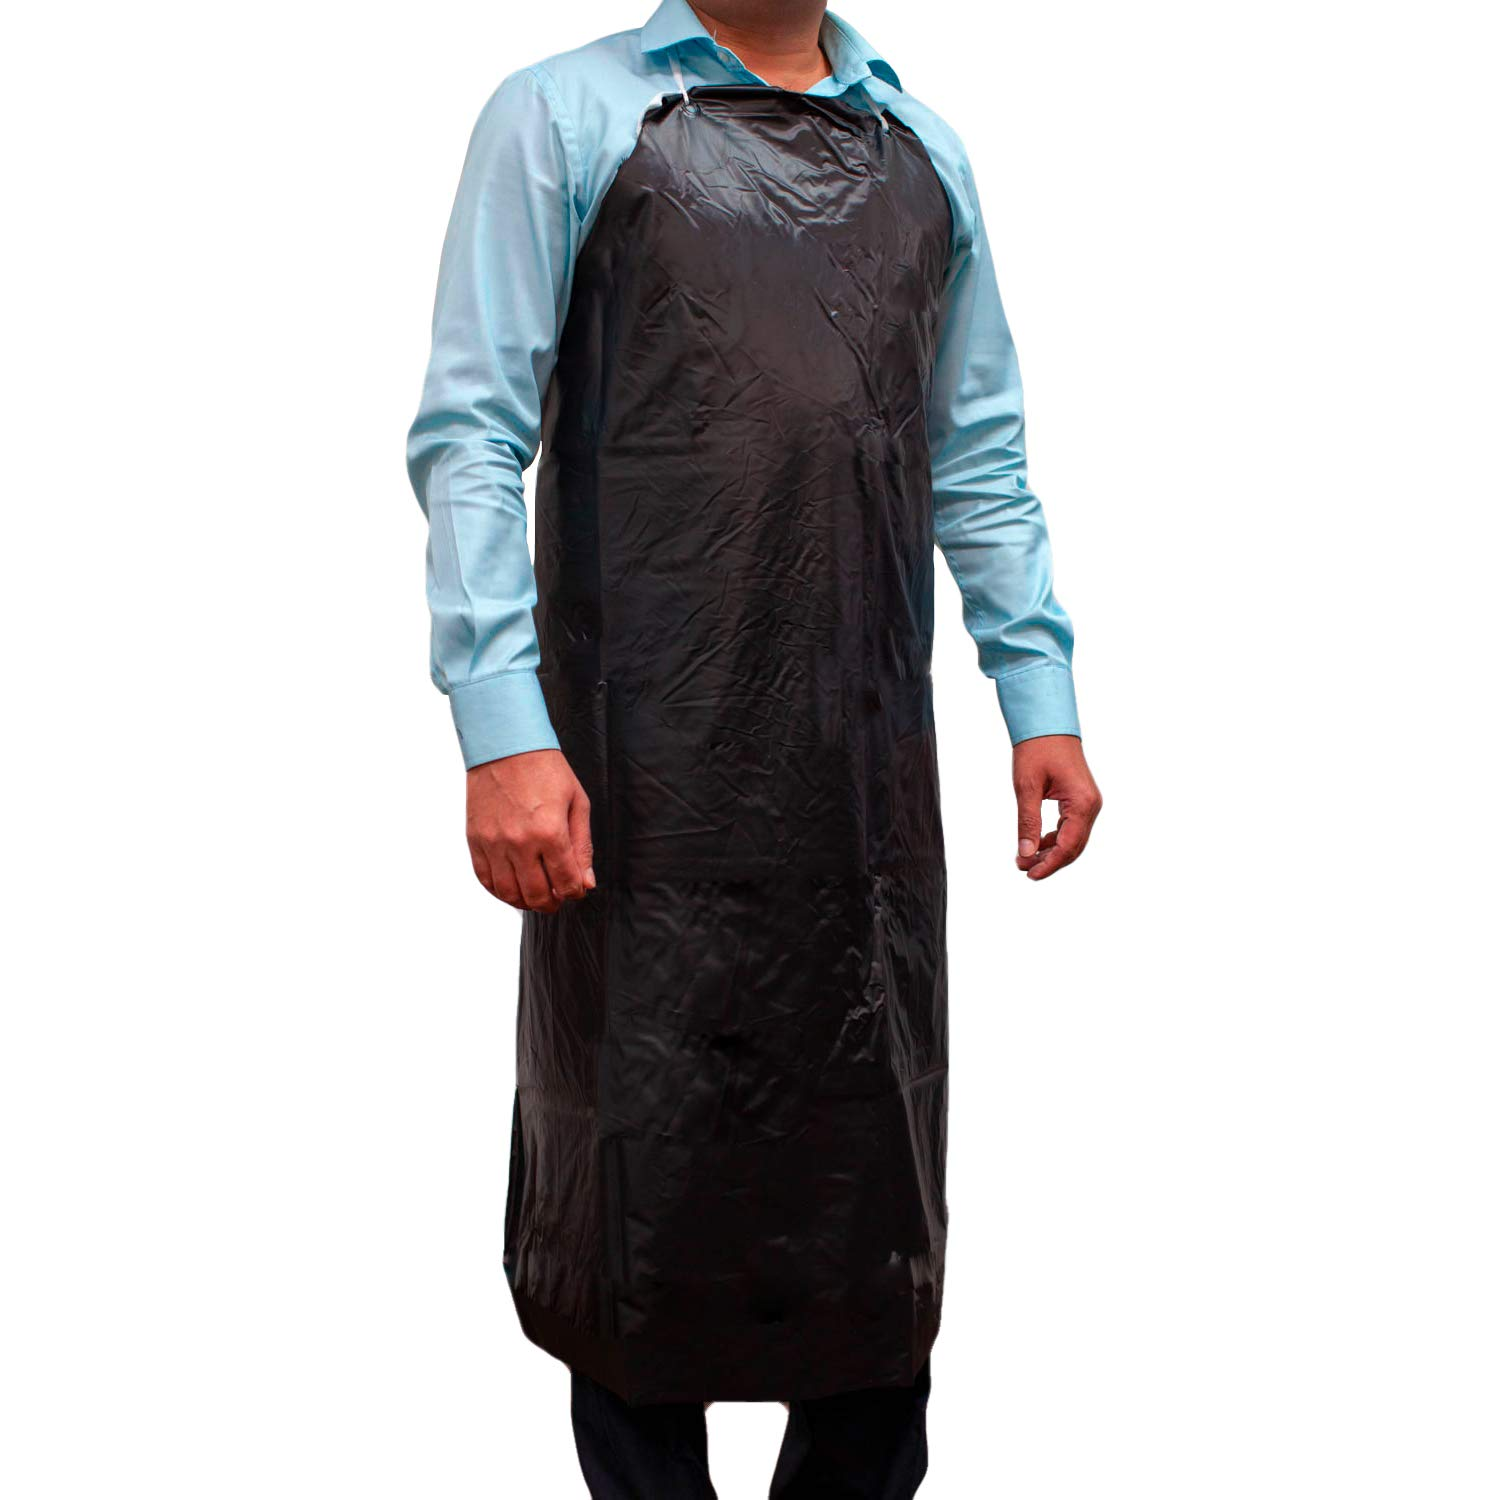 SAFE HANDLER PVC Apron | Smooth Finish to Prevent Bacterial Growth, Comfortable, Easily Adjustable, Waterproof Material, BLACK (Case of 50) by Safe Handler (Image #2)